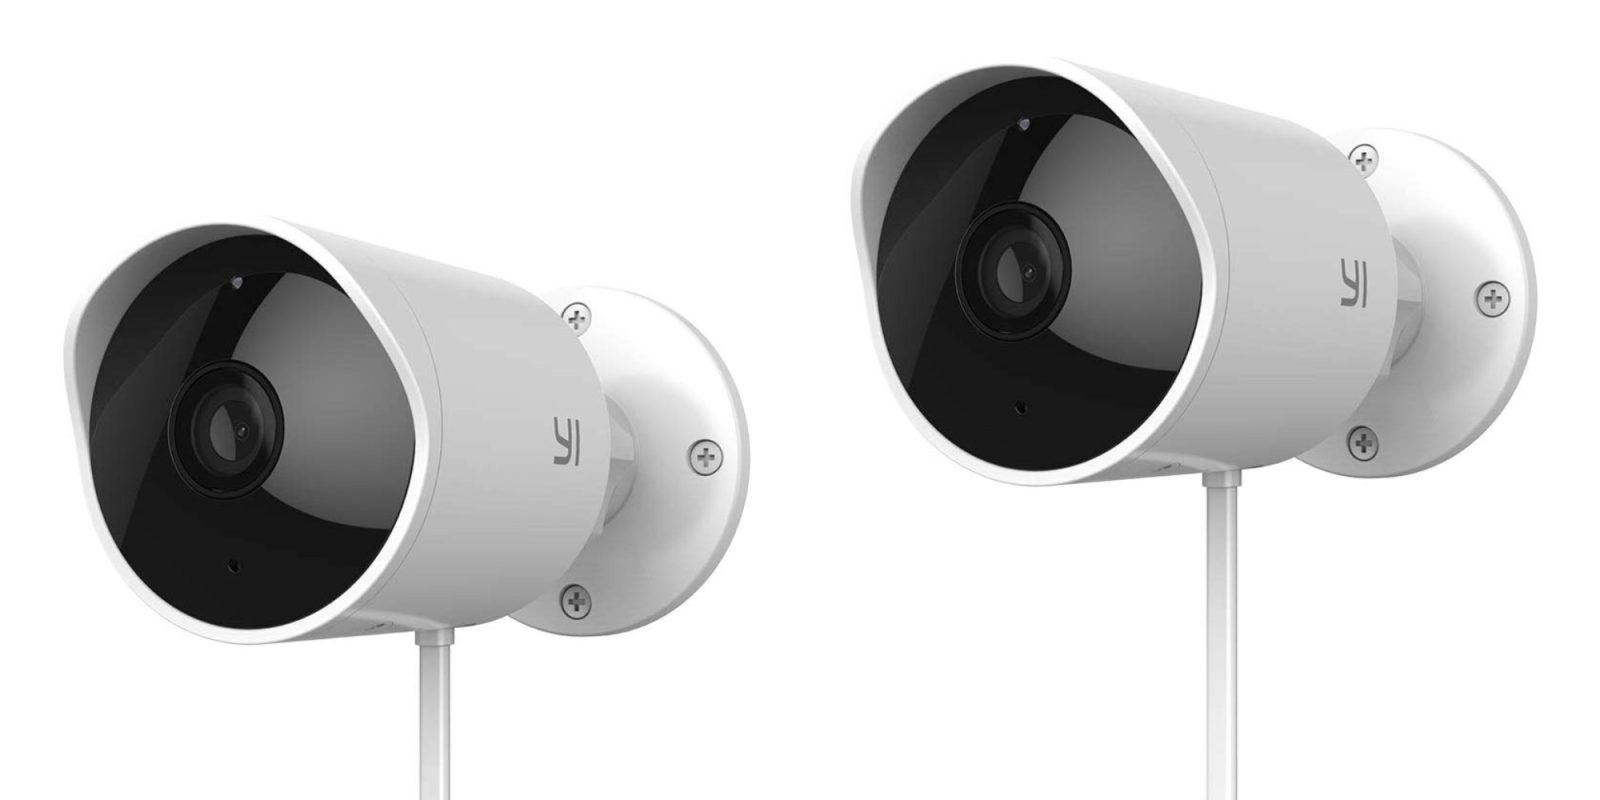 Bring home YI's Outdoor 1080p Security Camera for $61 and save 24%